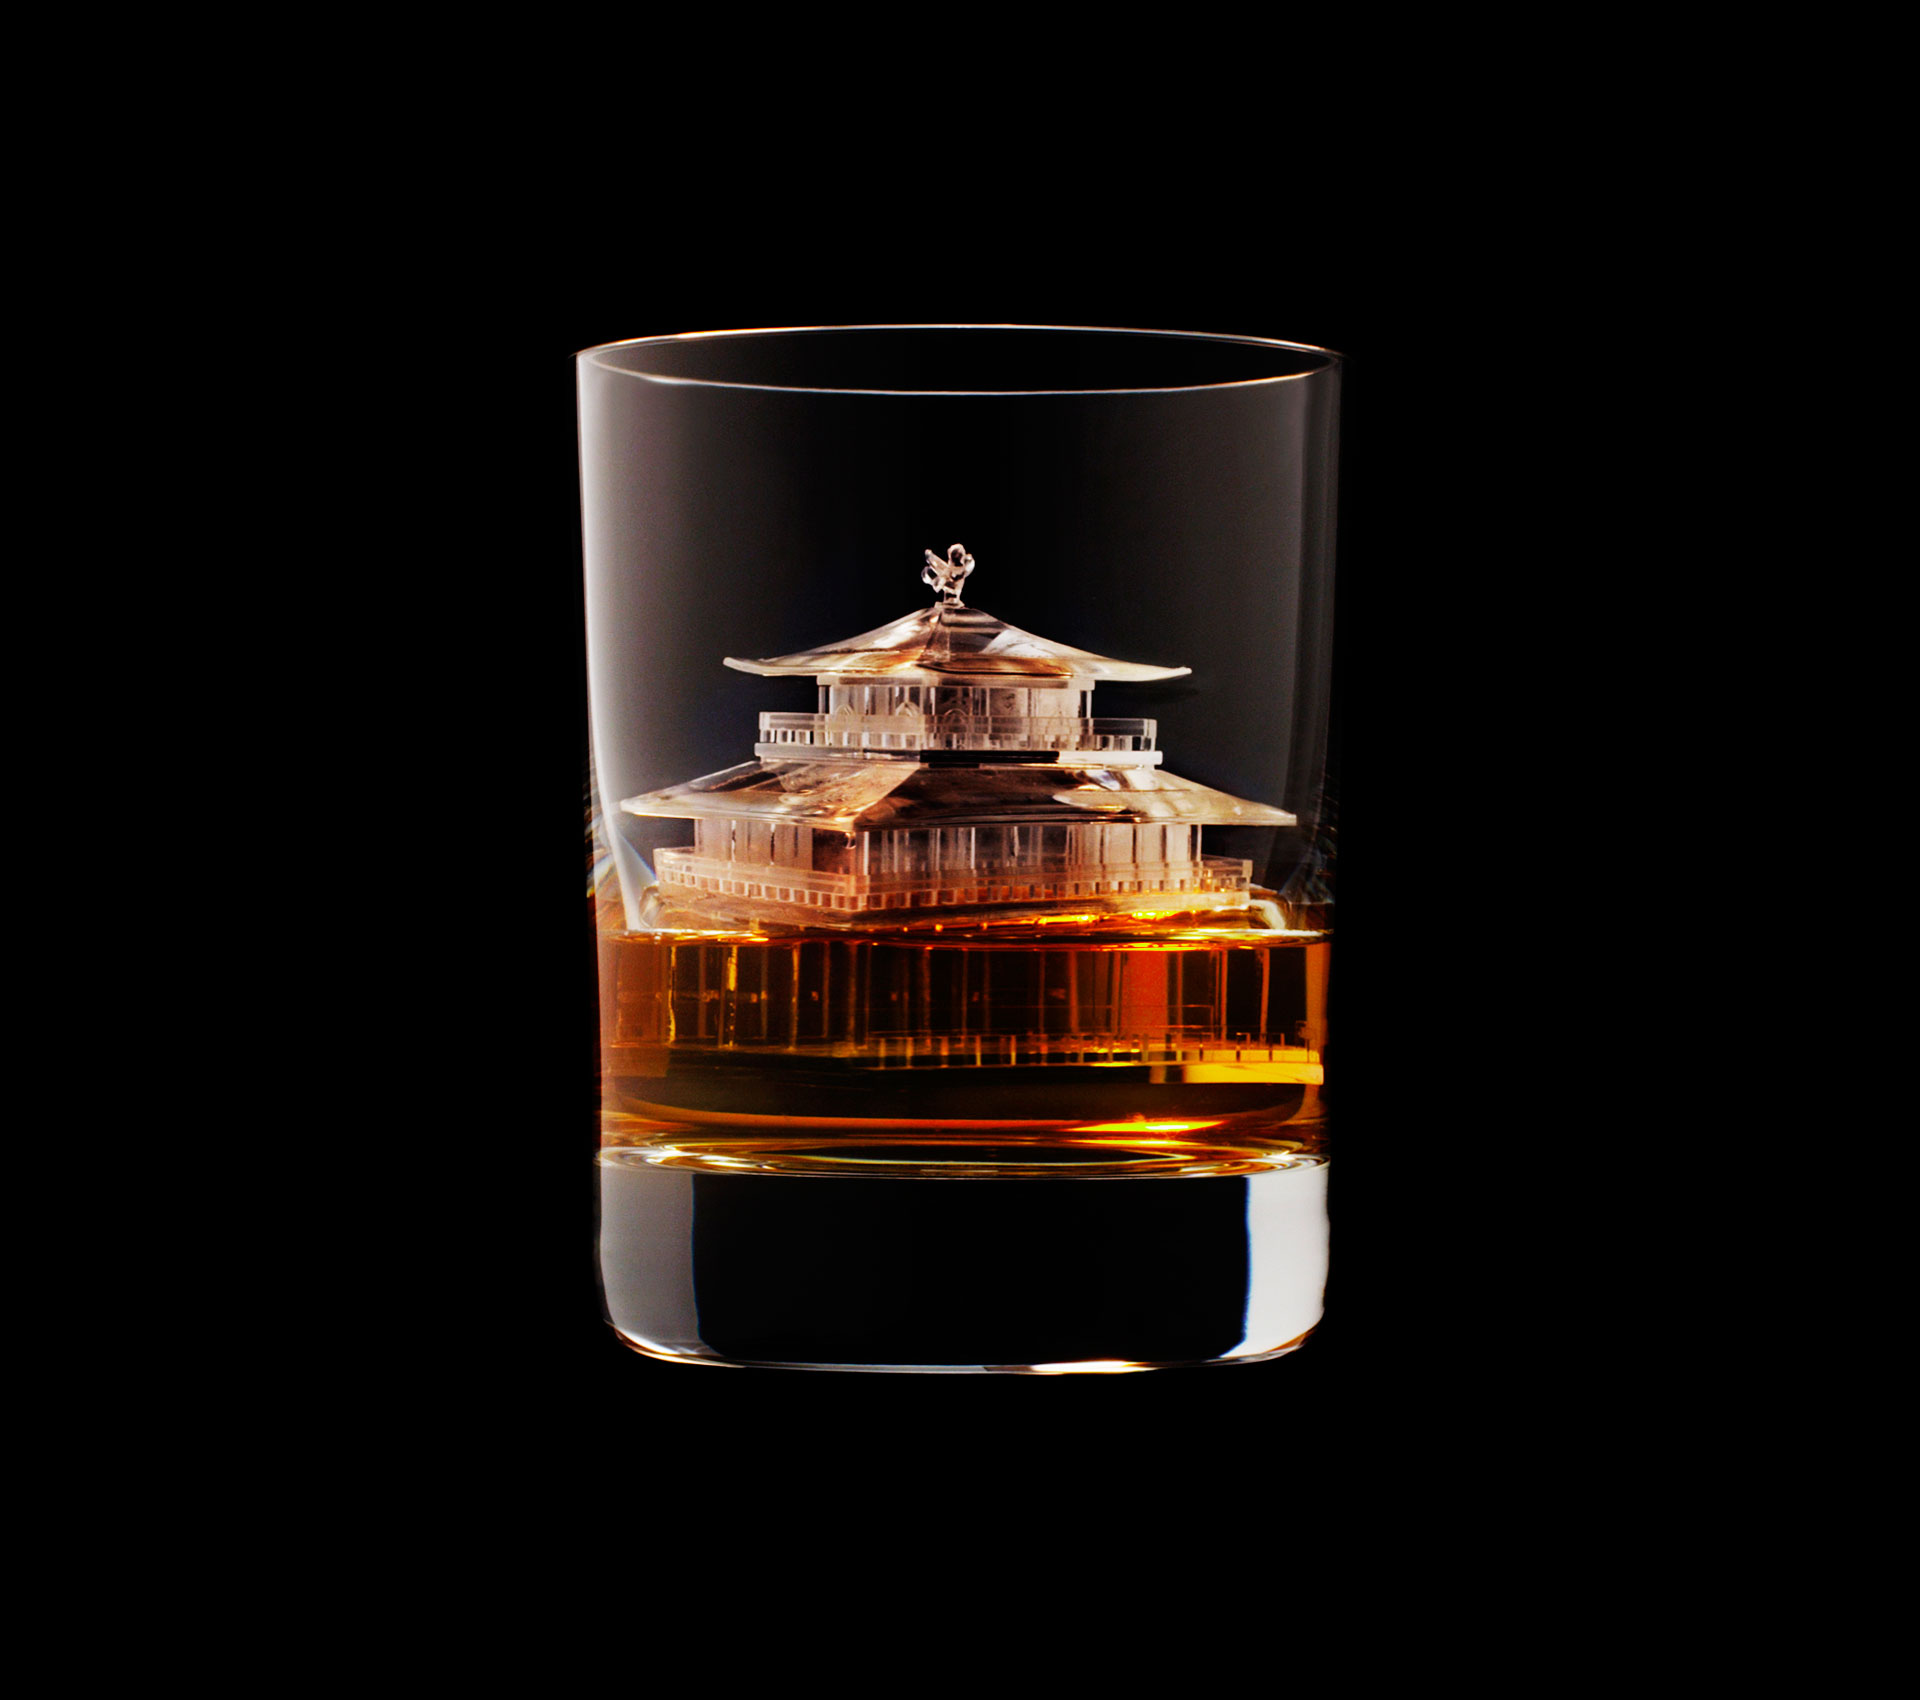 Suntory Whisky Carved the World's Most Incredible Ice Cubes